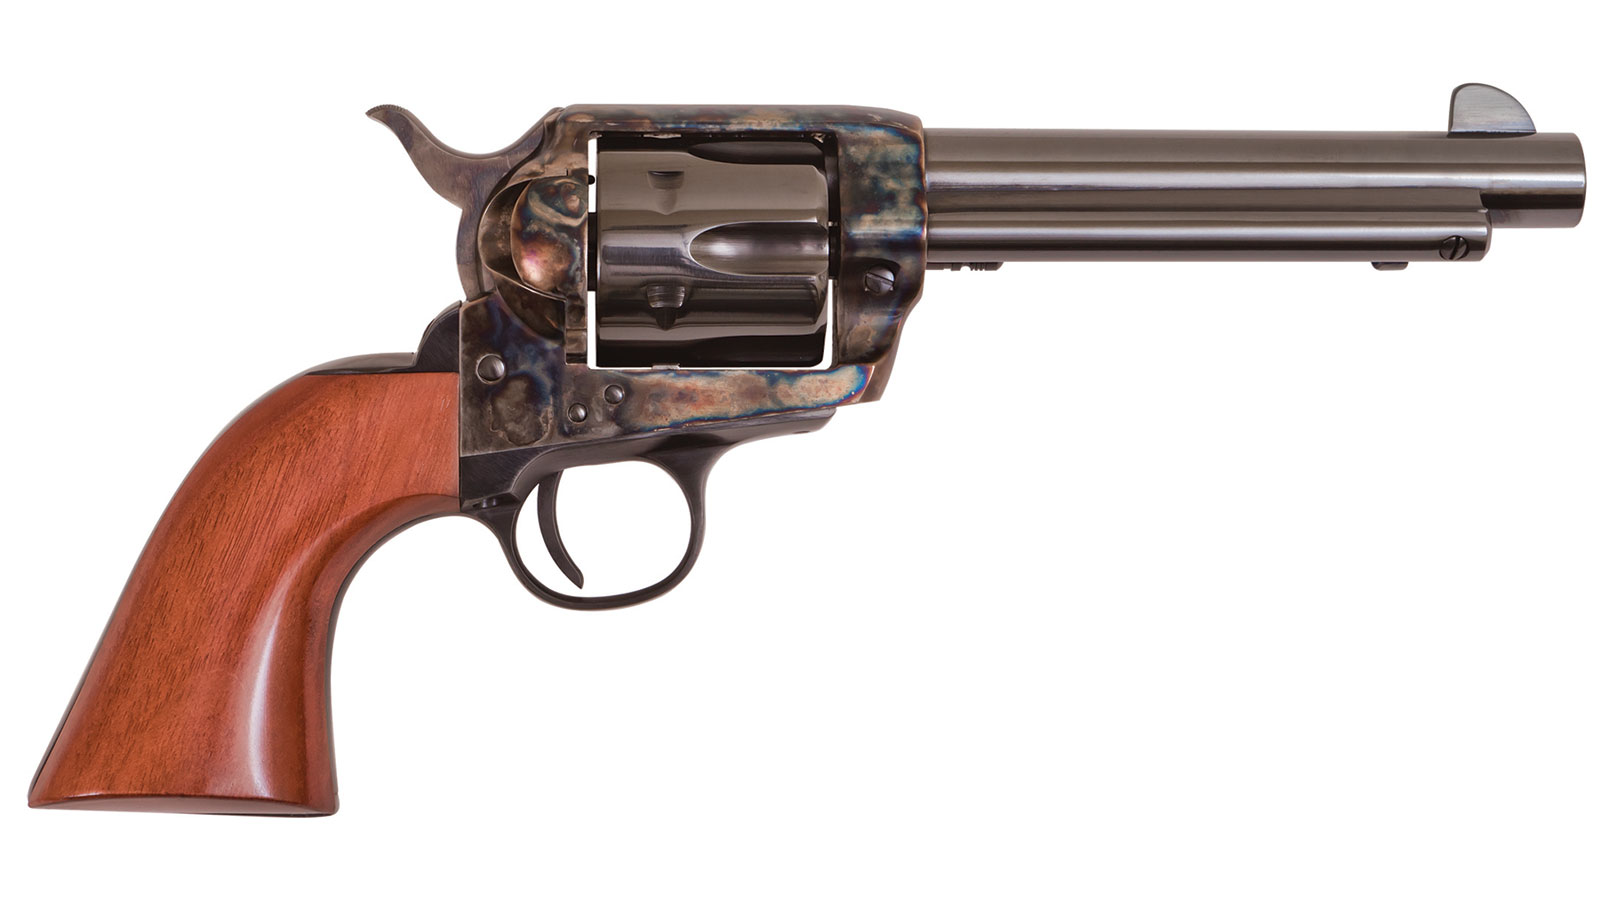 Cimarron PP400 Frontier Pre-War 1896-1940 Revolver 357|38 Special 4.75 Walnut Grip Blued in.